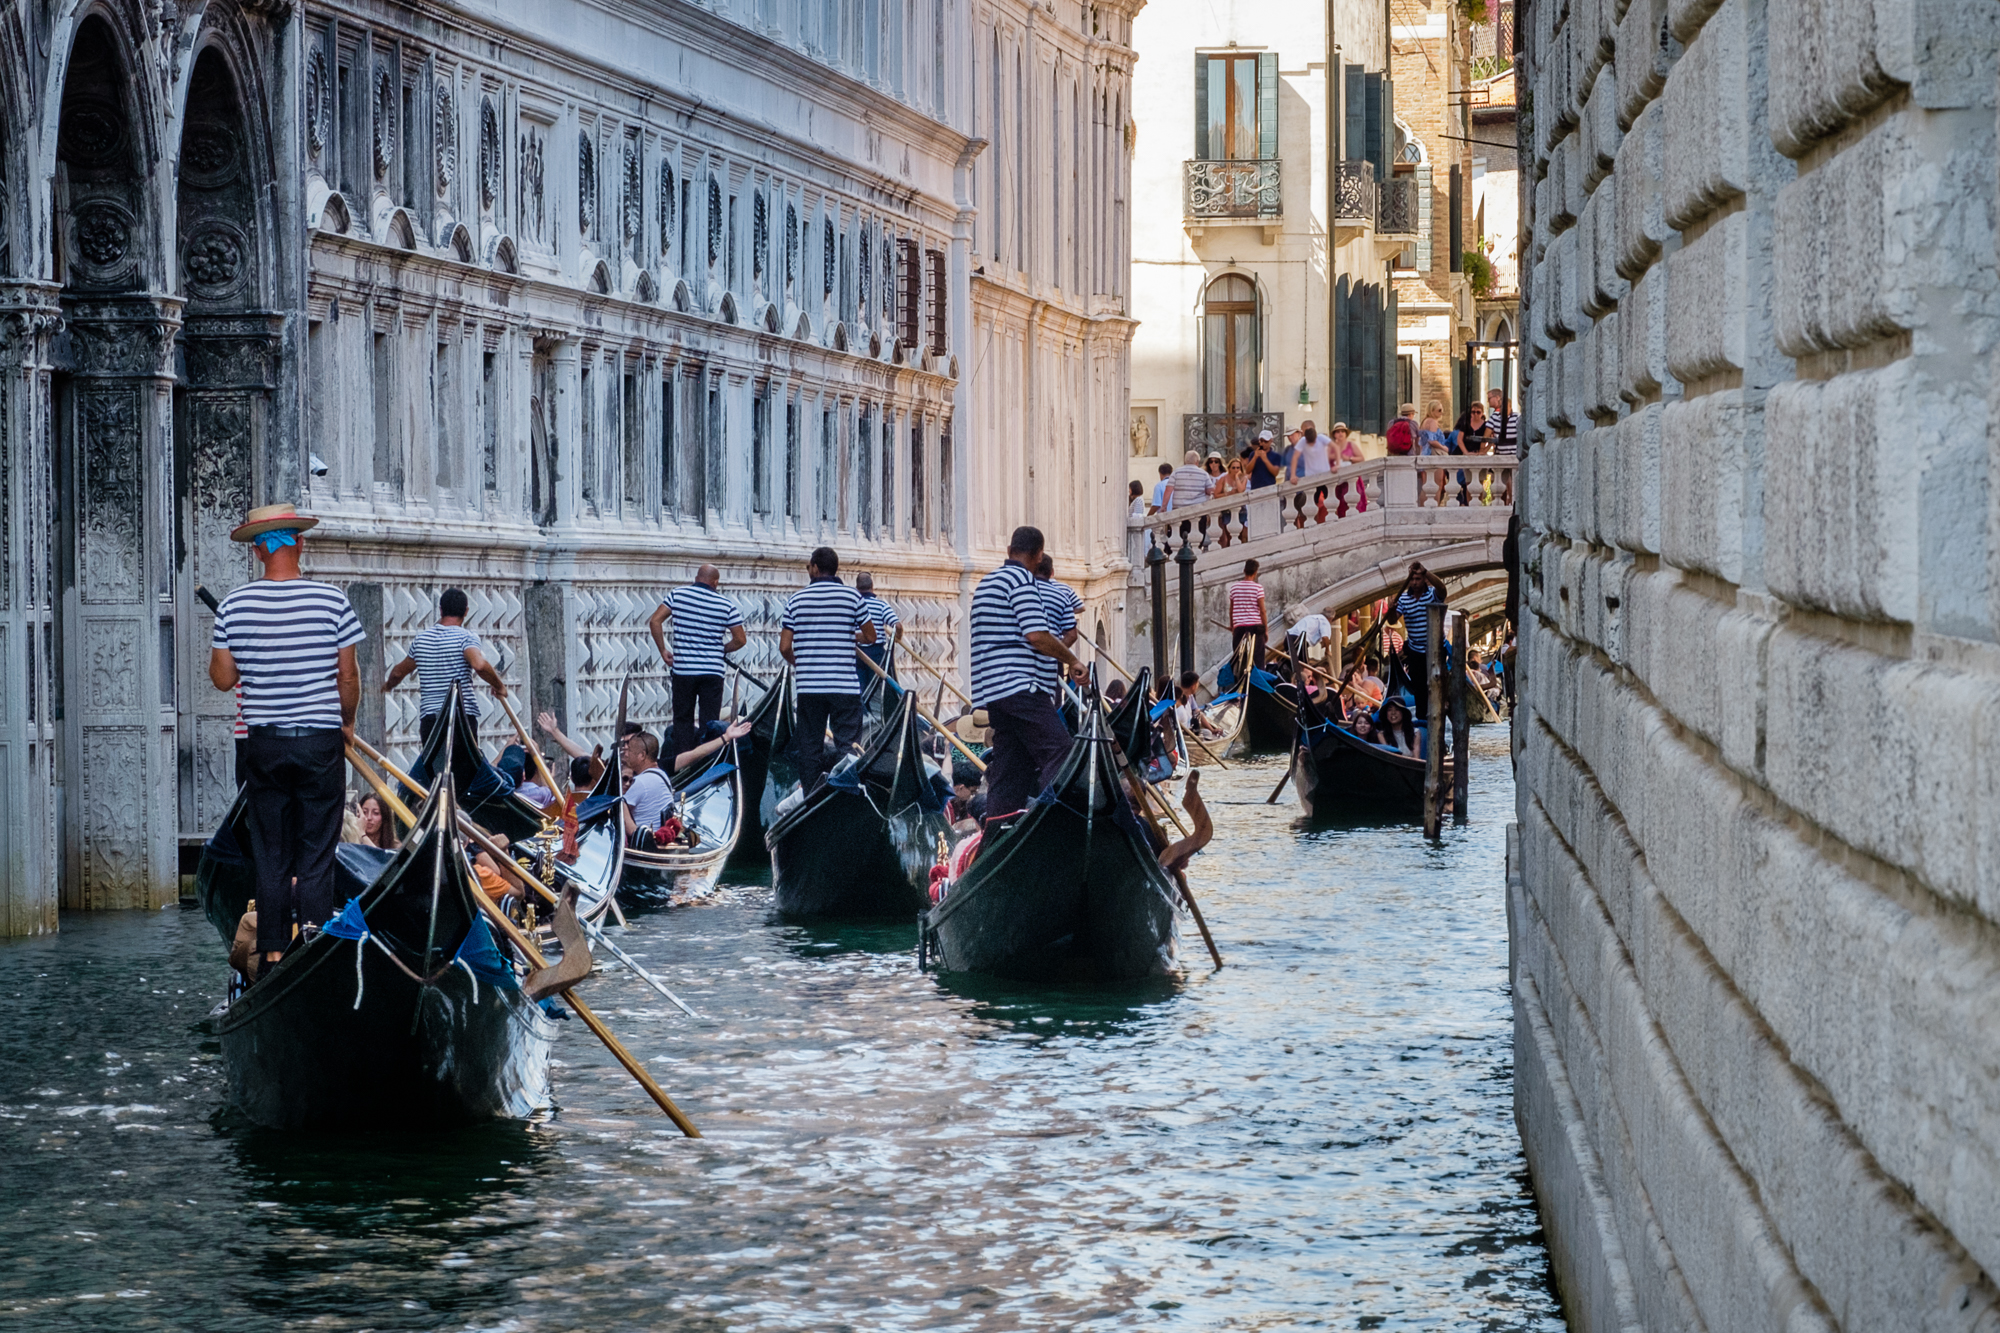 Photo of the gondola traffic along the canal under the Bridge of Sighs taken by Trevor Sherwin